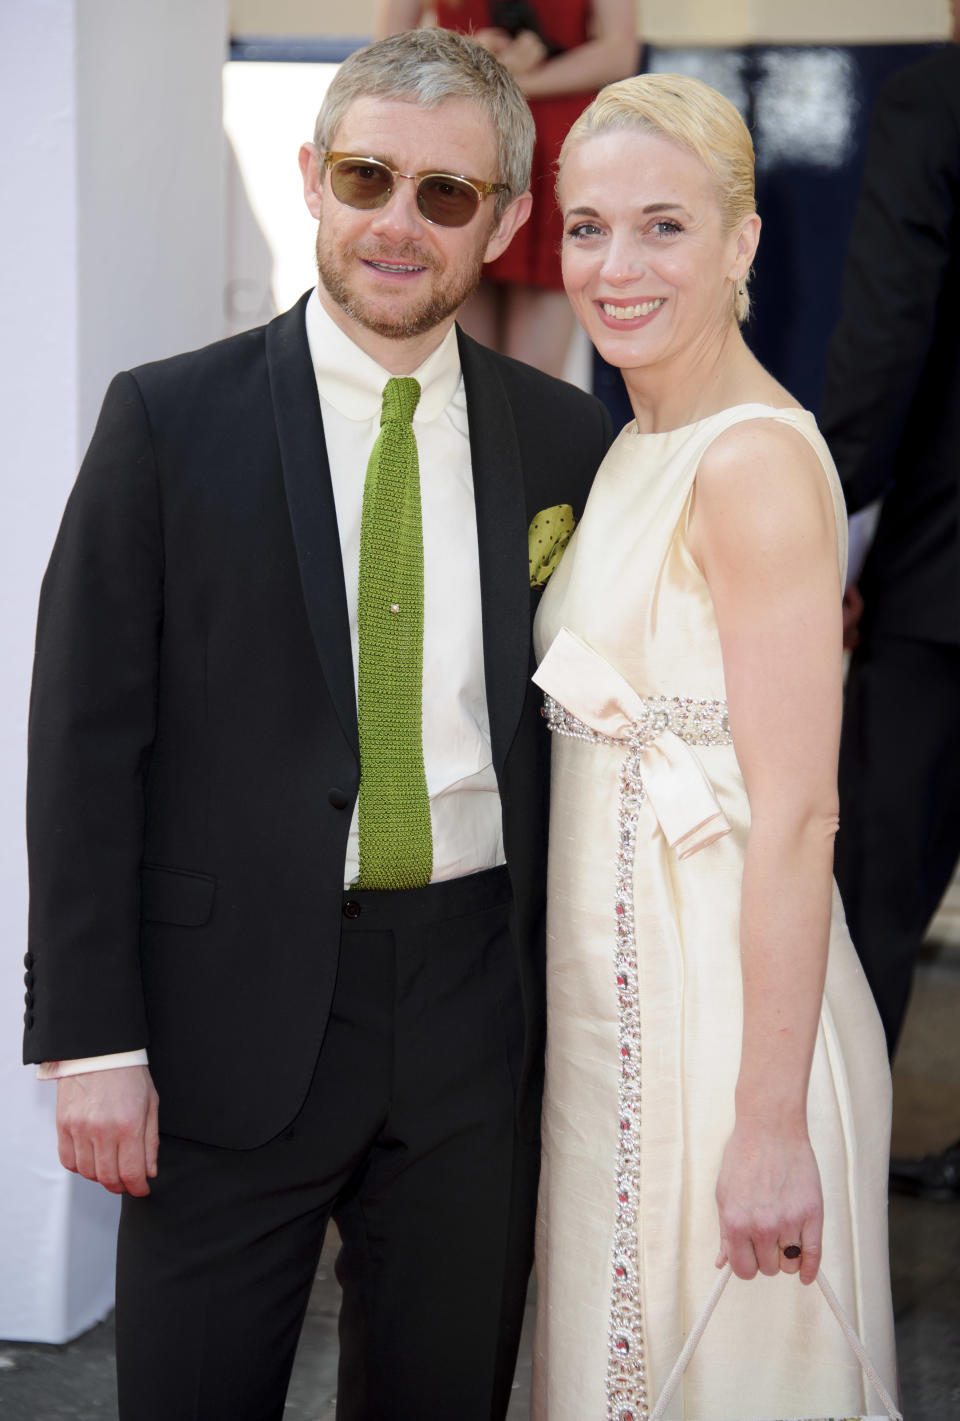 British actors Martin Freeman and Amanda Abbington arrive for the British Academy Television Awards at a central London venue, Sunday, May 18, 2014. (Photo by Jonathan Short/Invision/AP)